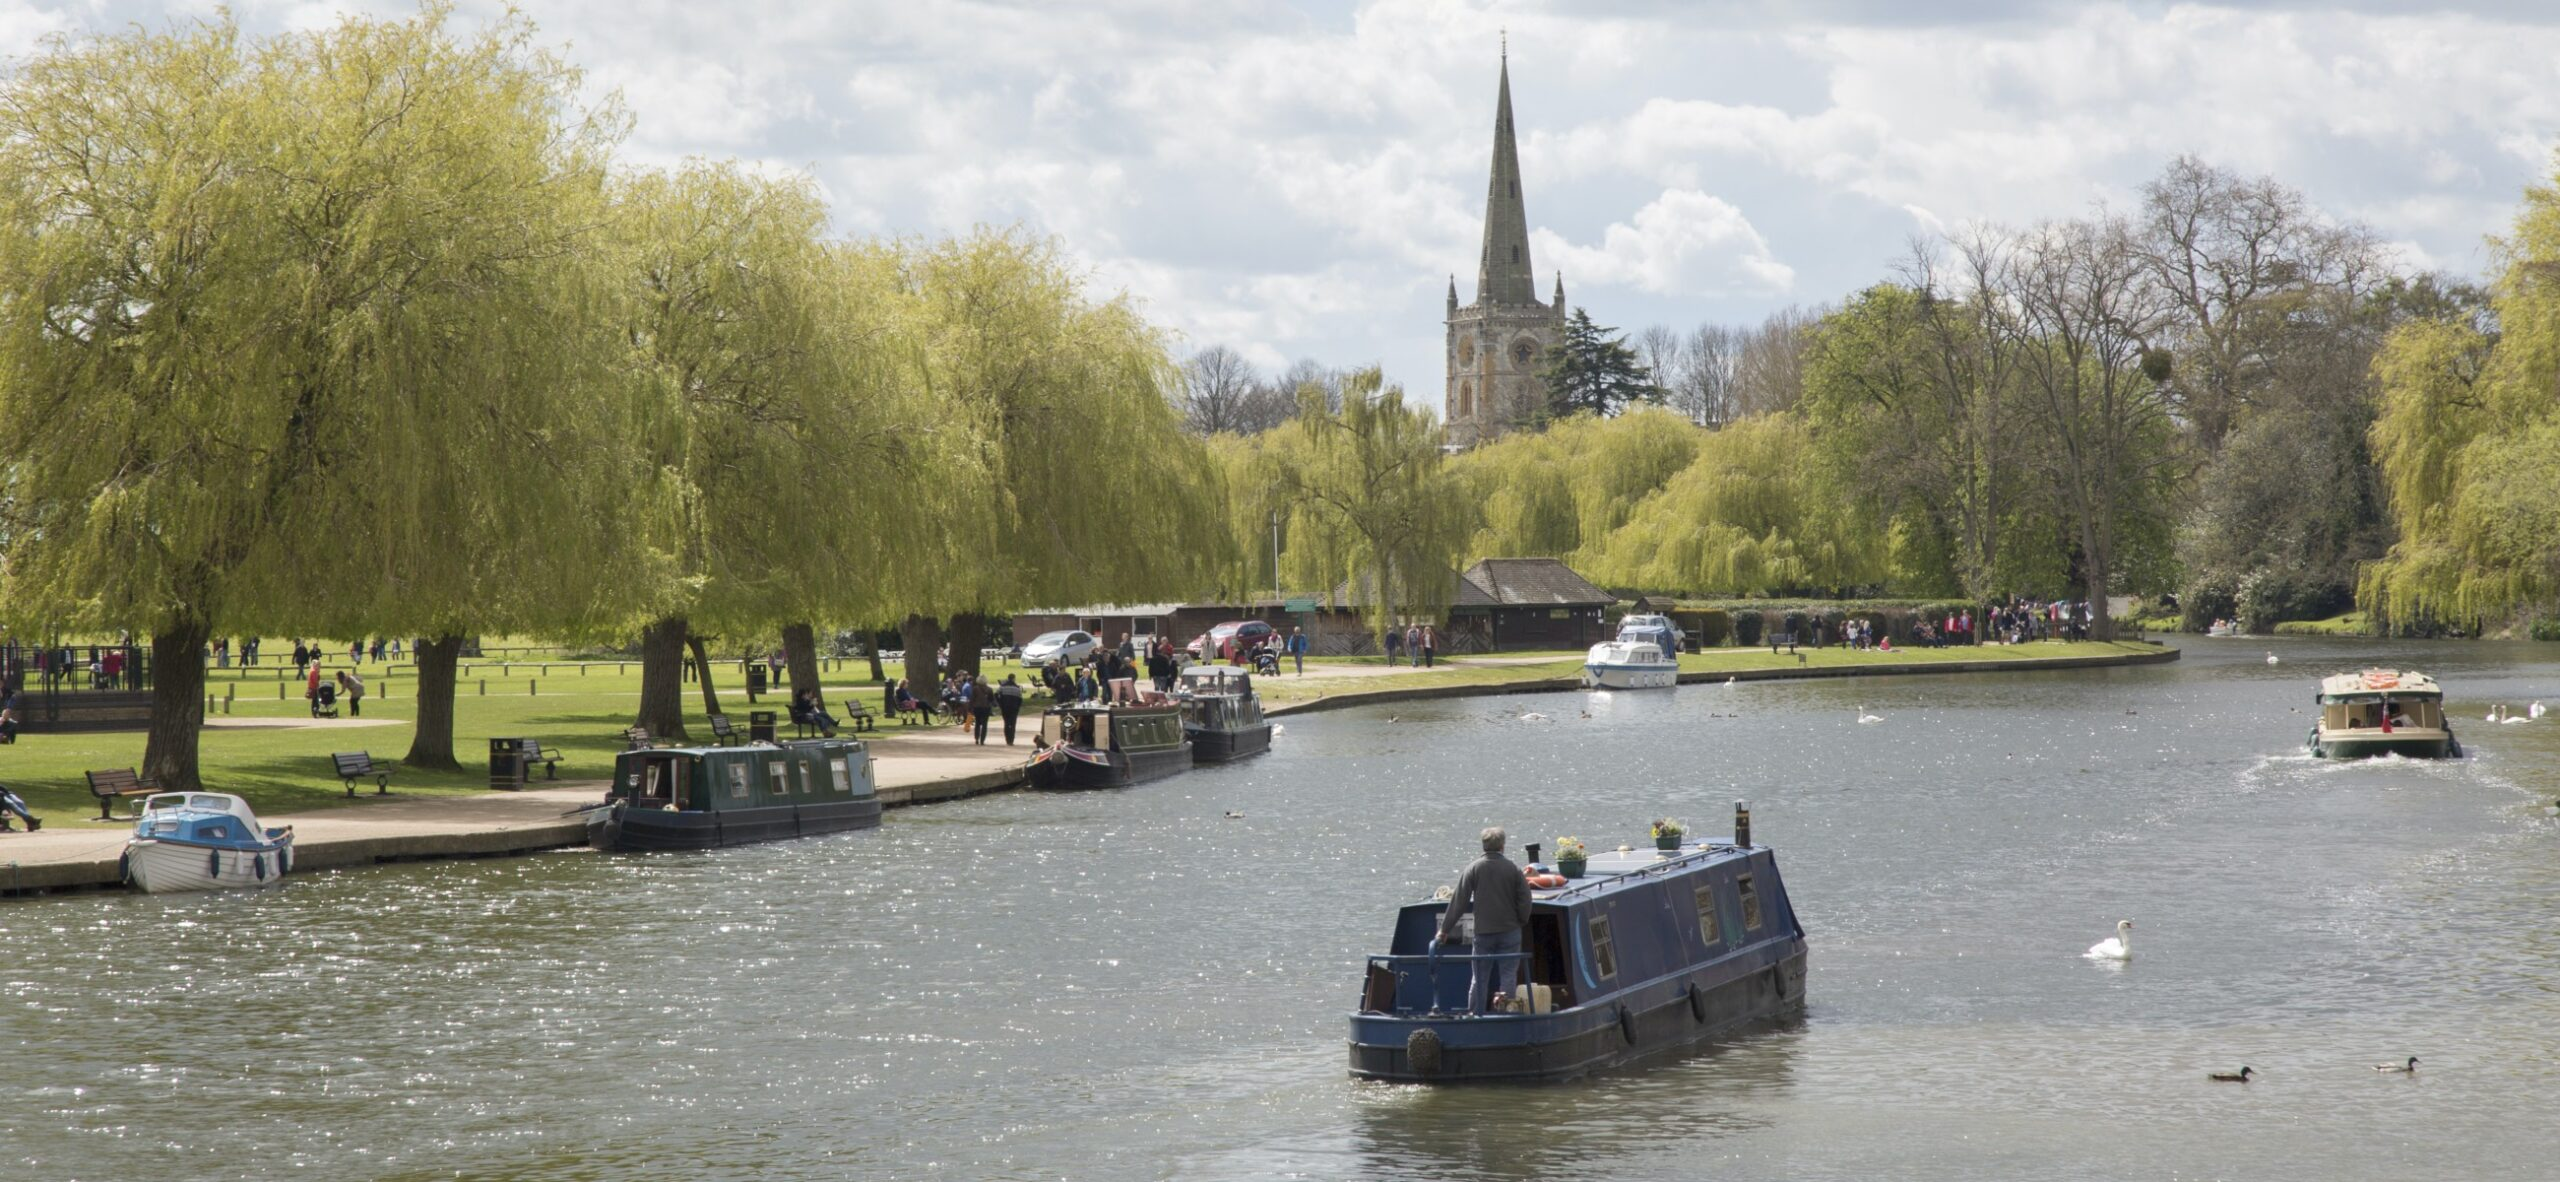 Stratford Upon Avon – Into Shakespeare's Town: Top Things to Do